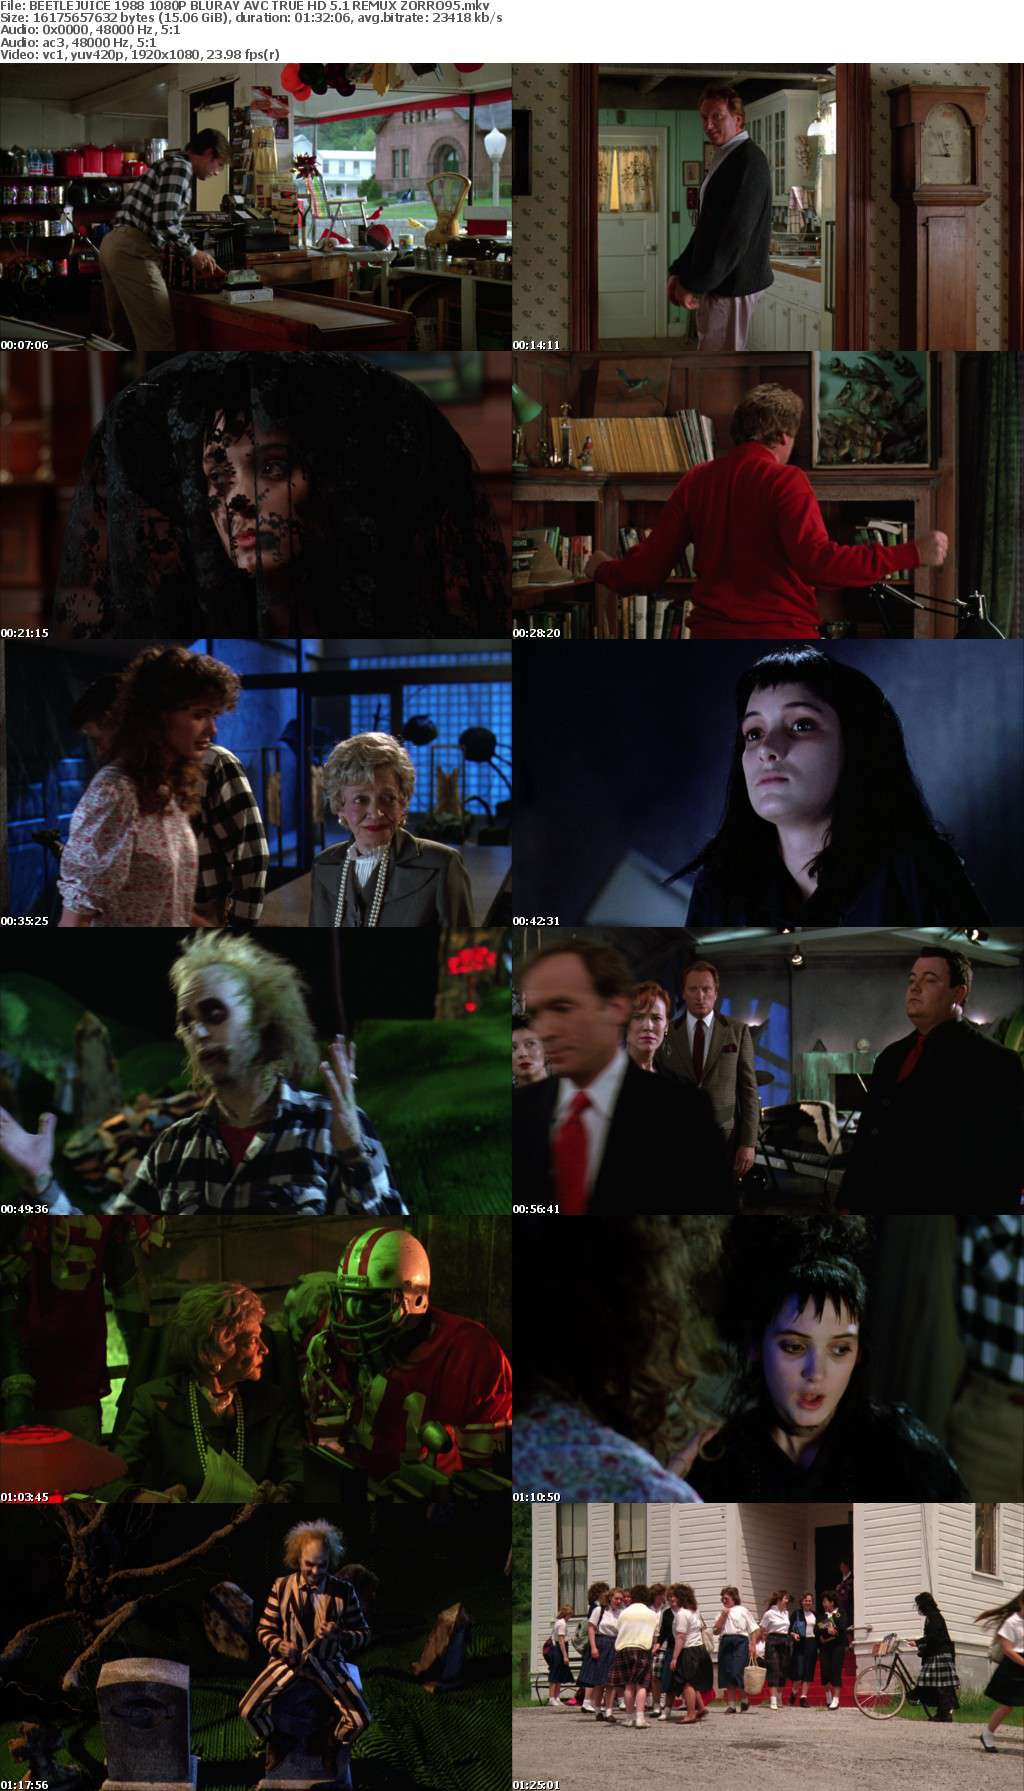 BEETLEJUICE 1988 1080P BLURAY REMUX AVC TRUE HD 5 1-ZORRO95